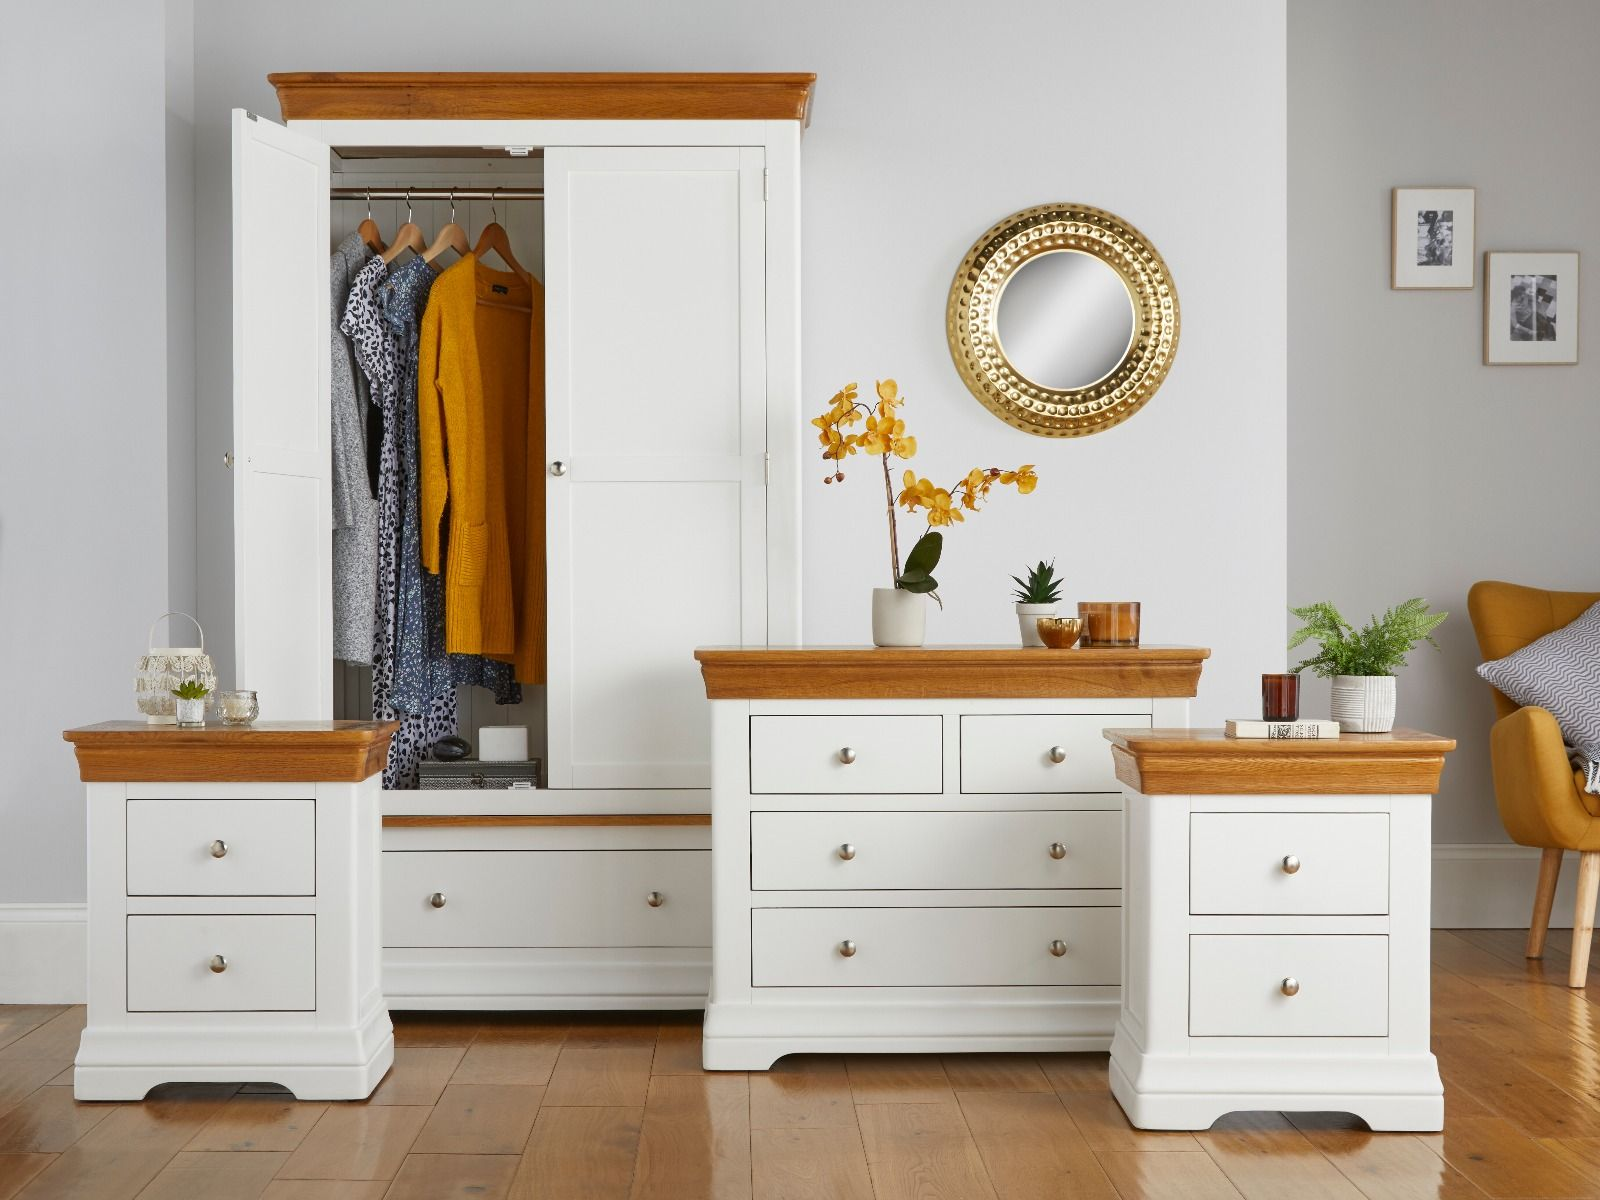 Farmhouse White Painted Oak Bedroom Set, Wardrobe, Chest of Drawers and  Pair of Bedside Tables - WINTER SALE